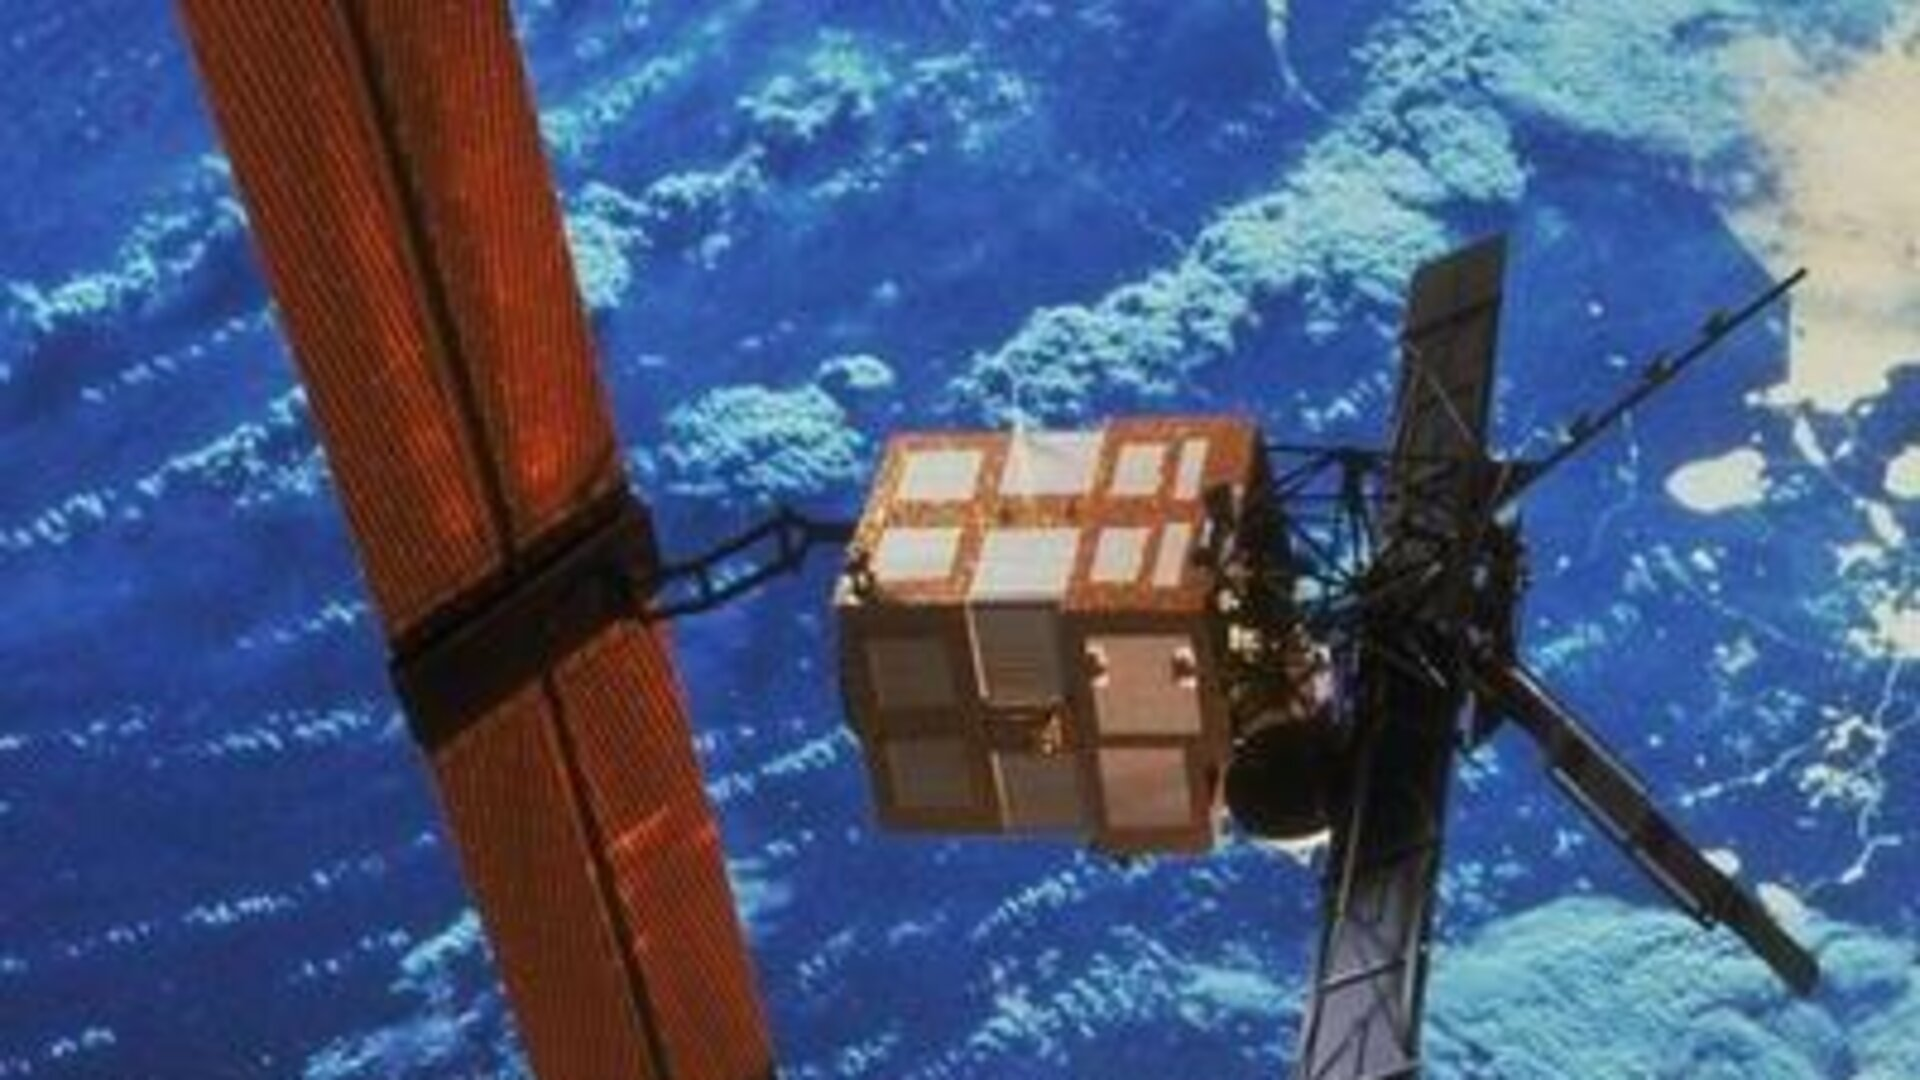 ERS-2 was moved to a safe disposal orbit in 2011